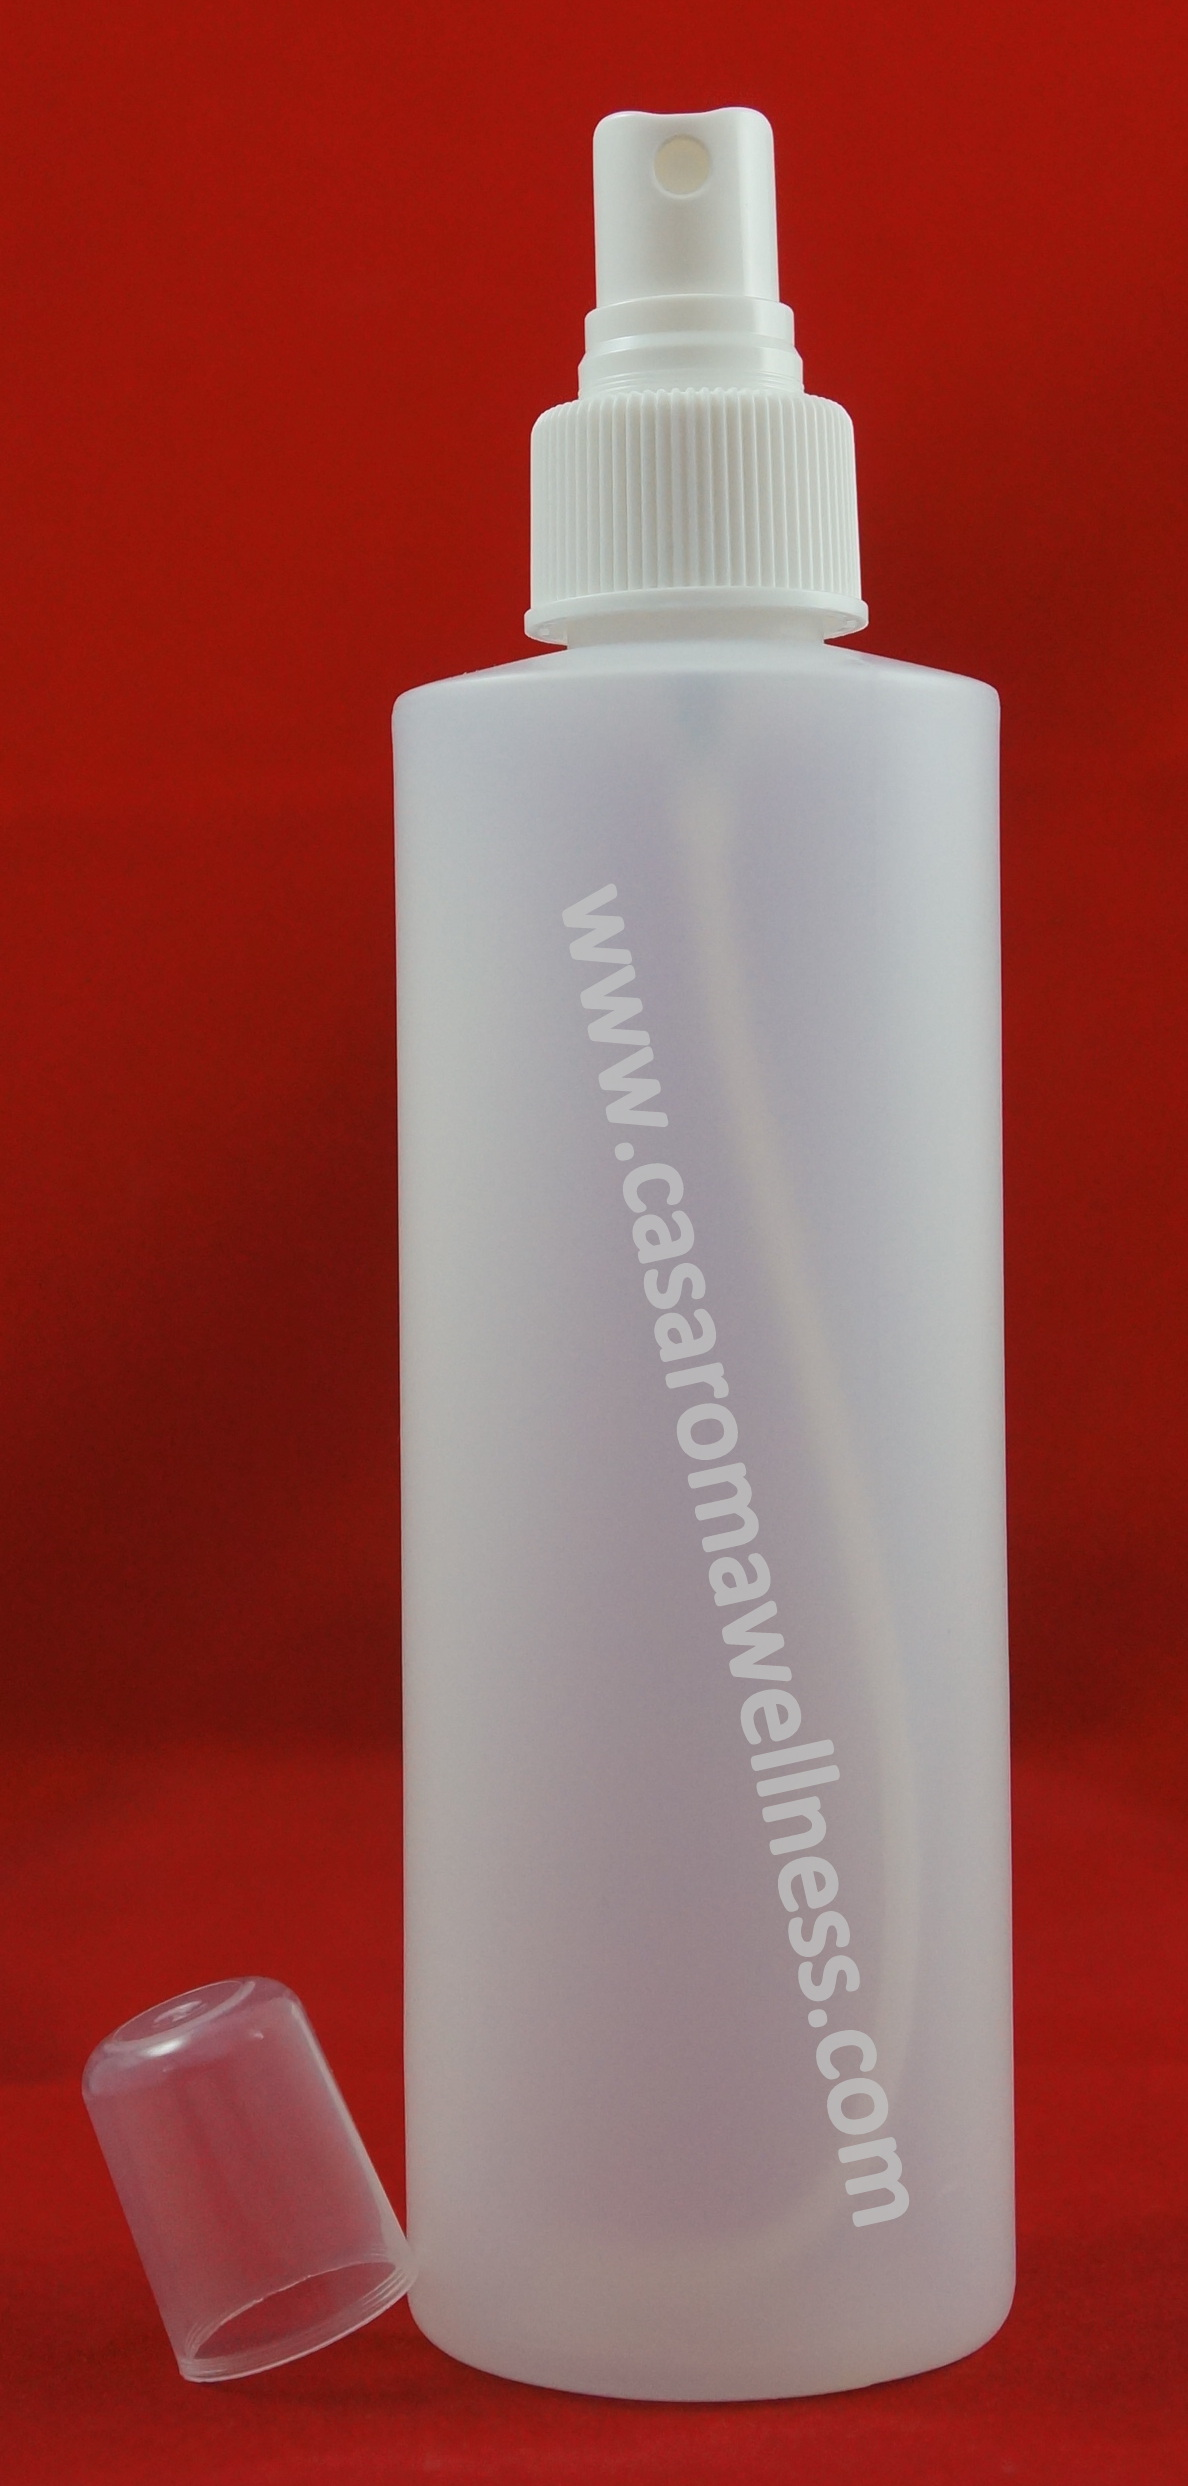 HDPE Bottle (plastic) with mister